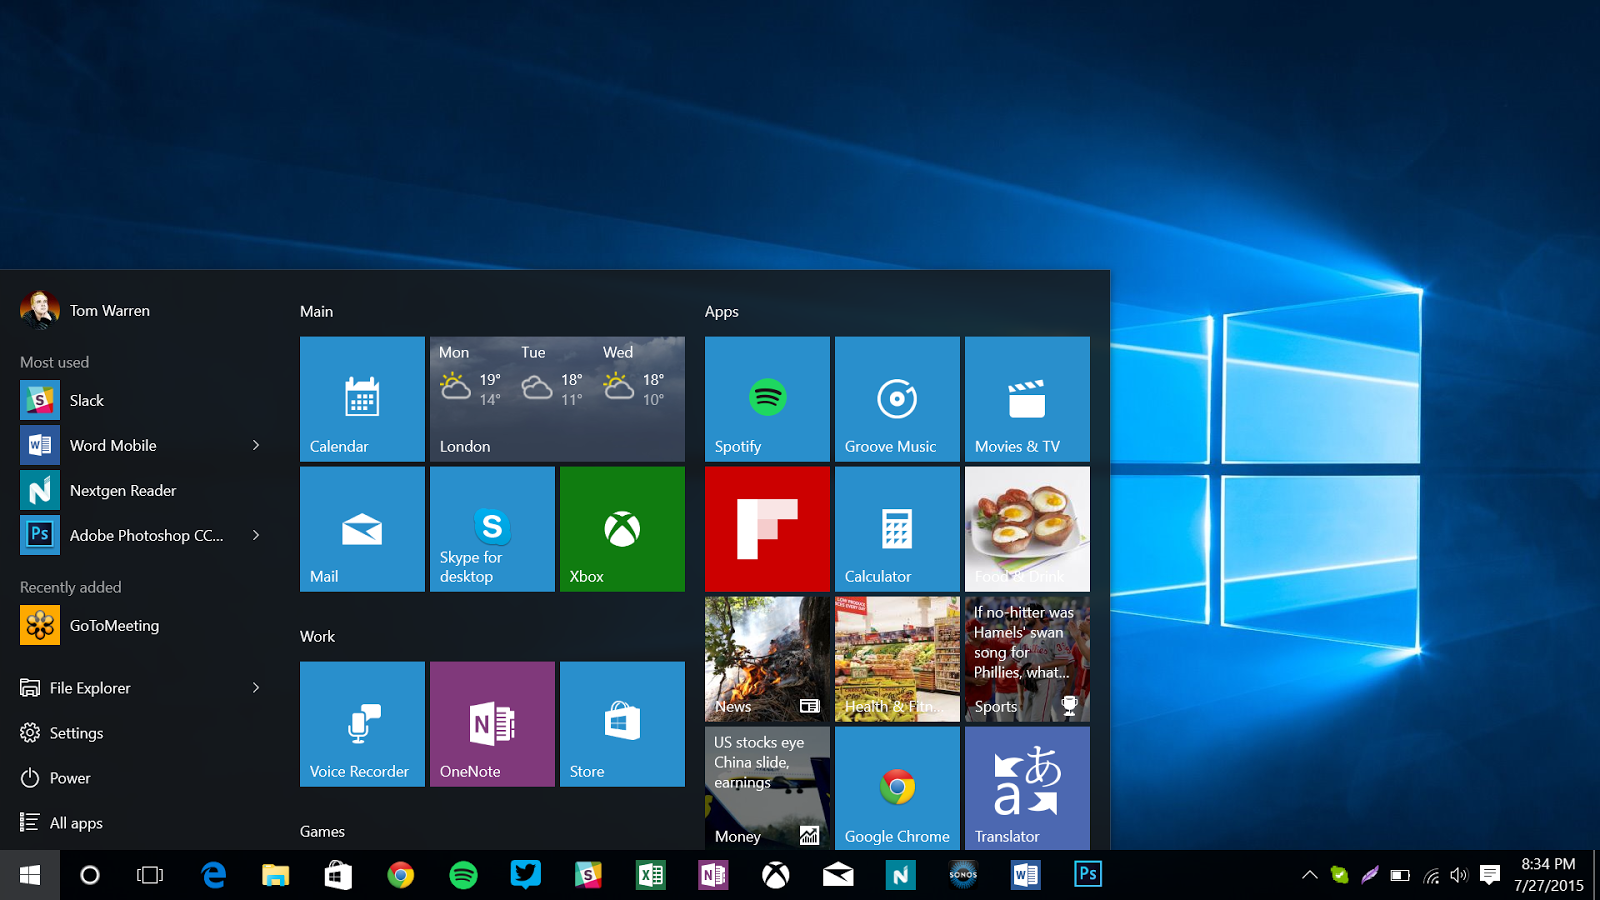 windows to roll out windows 10 next major updates in march next year